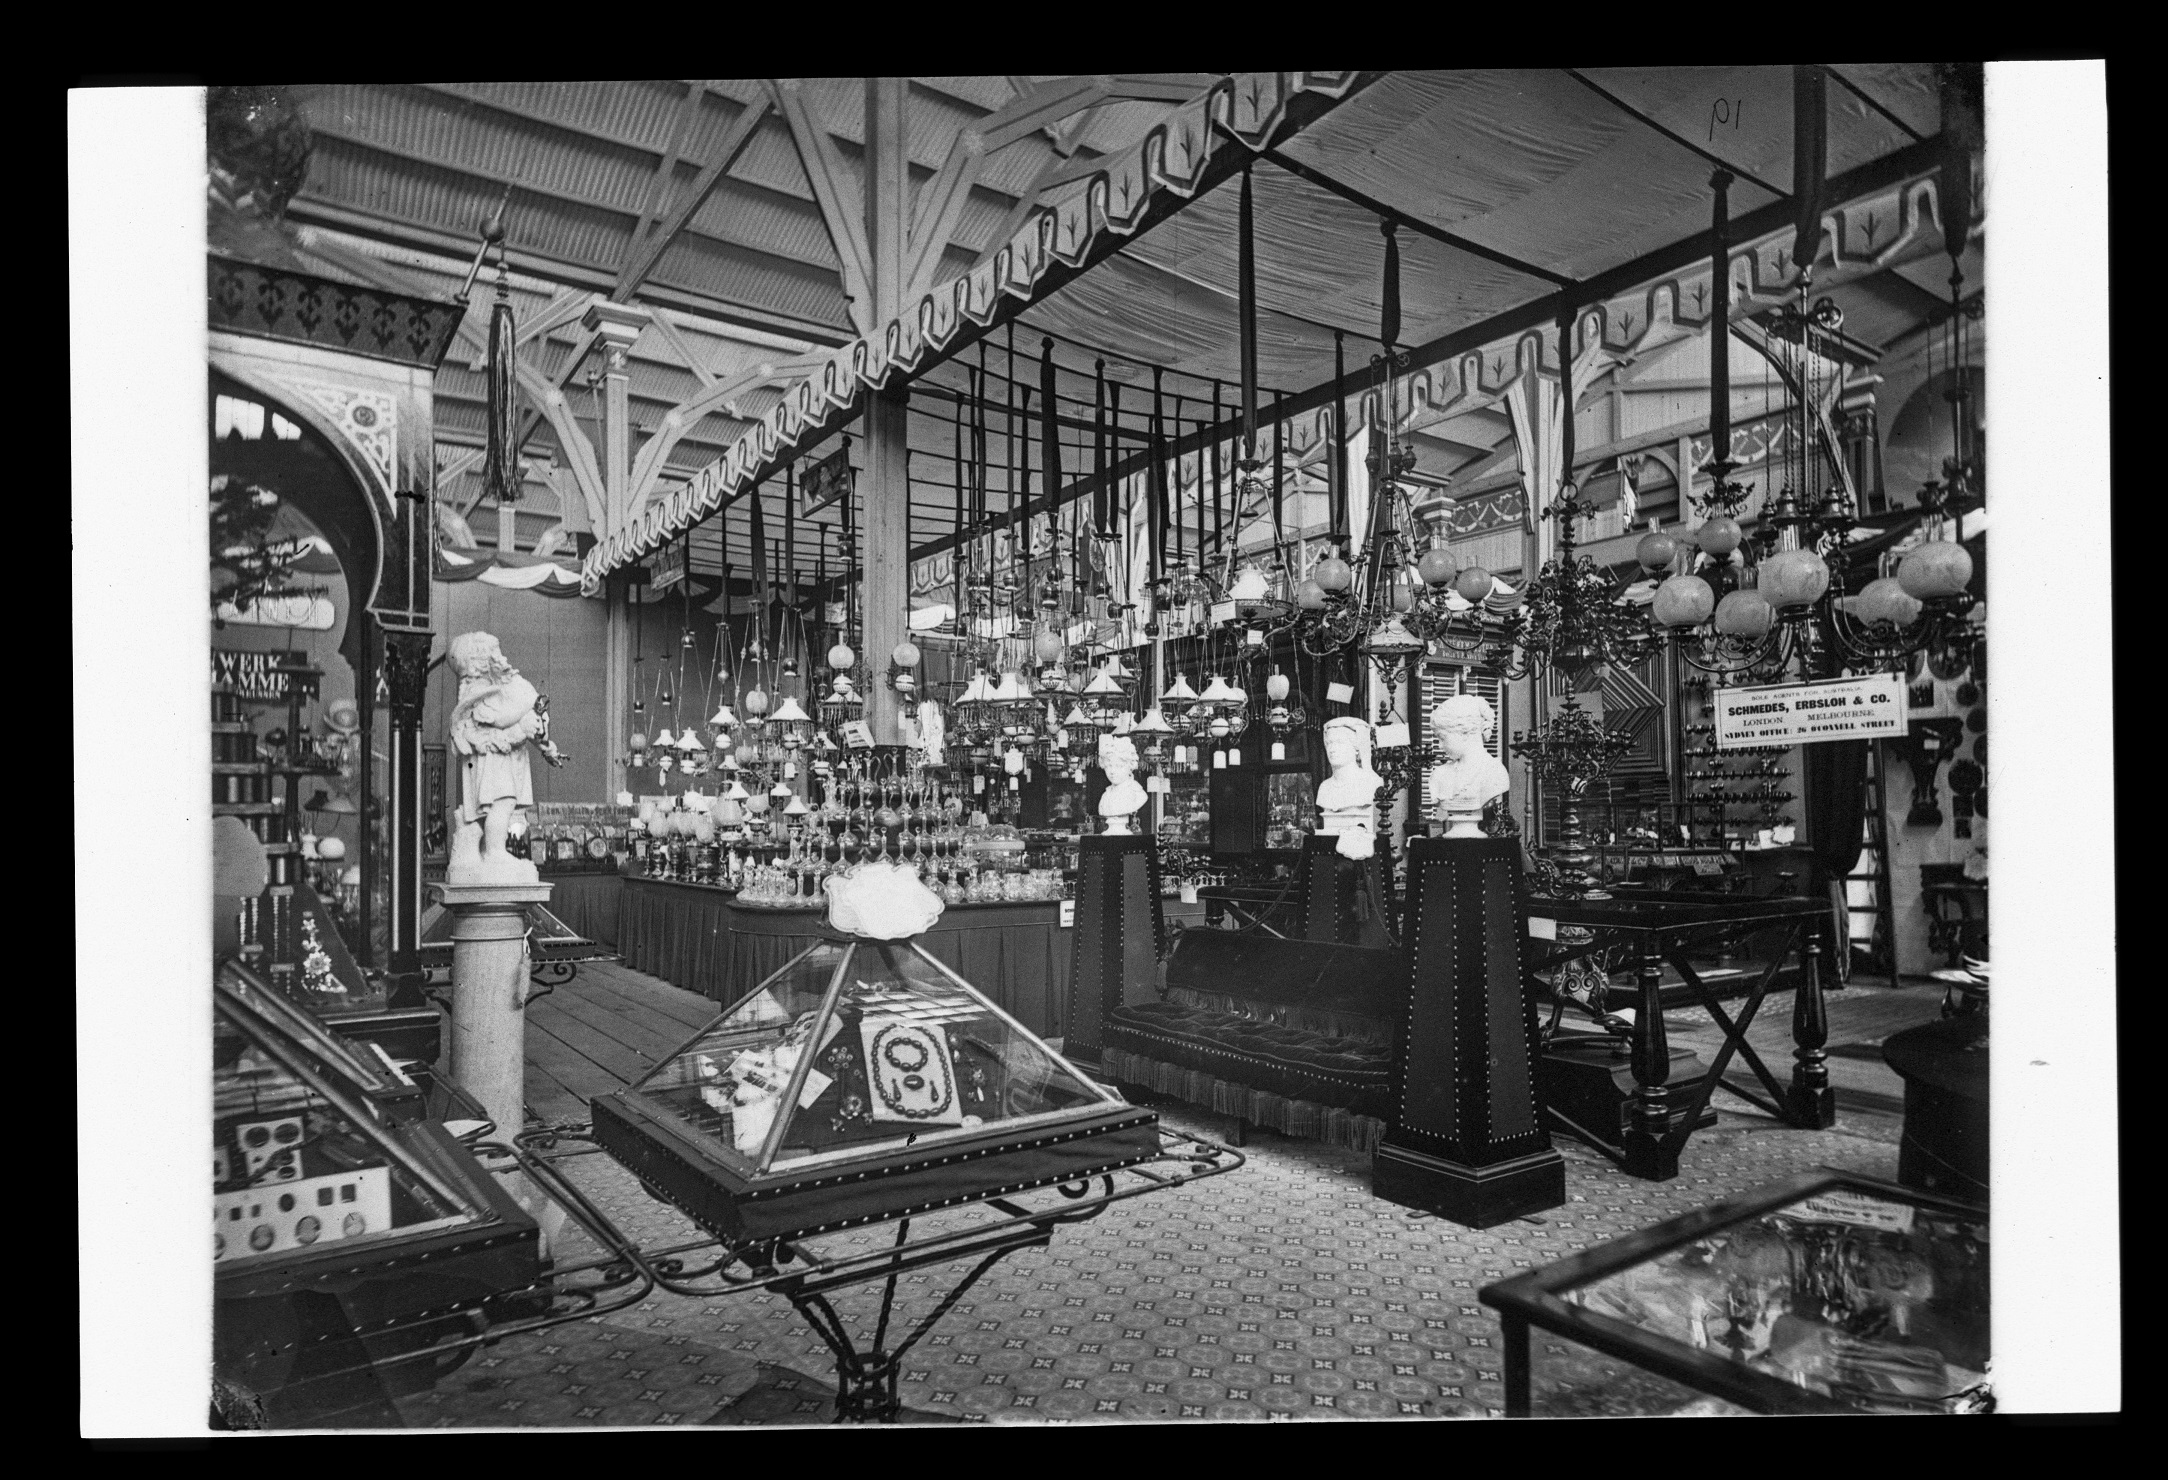 Exhibits, International Exhibition, Sydney, 1879-80